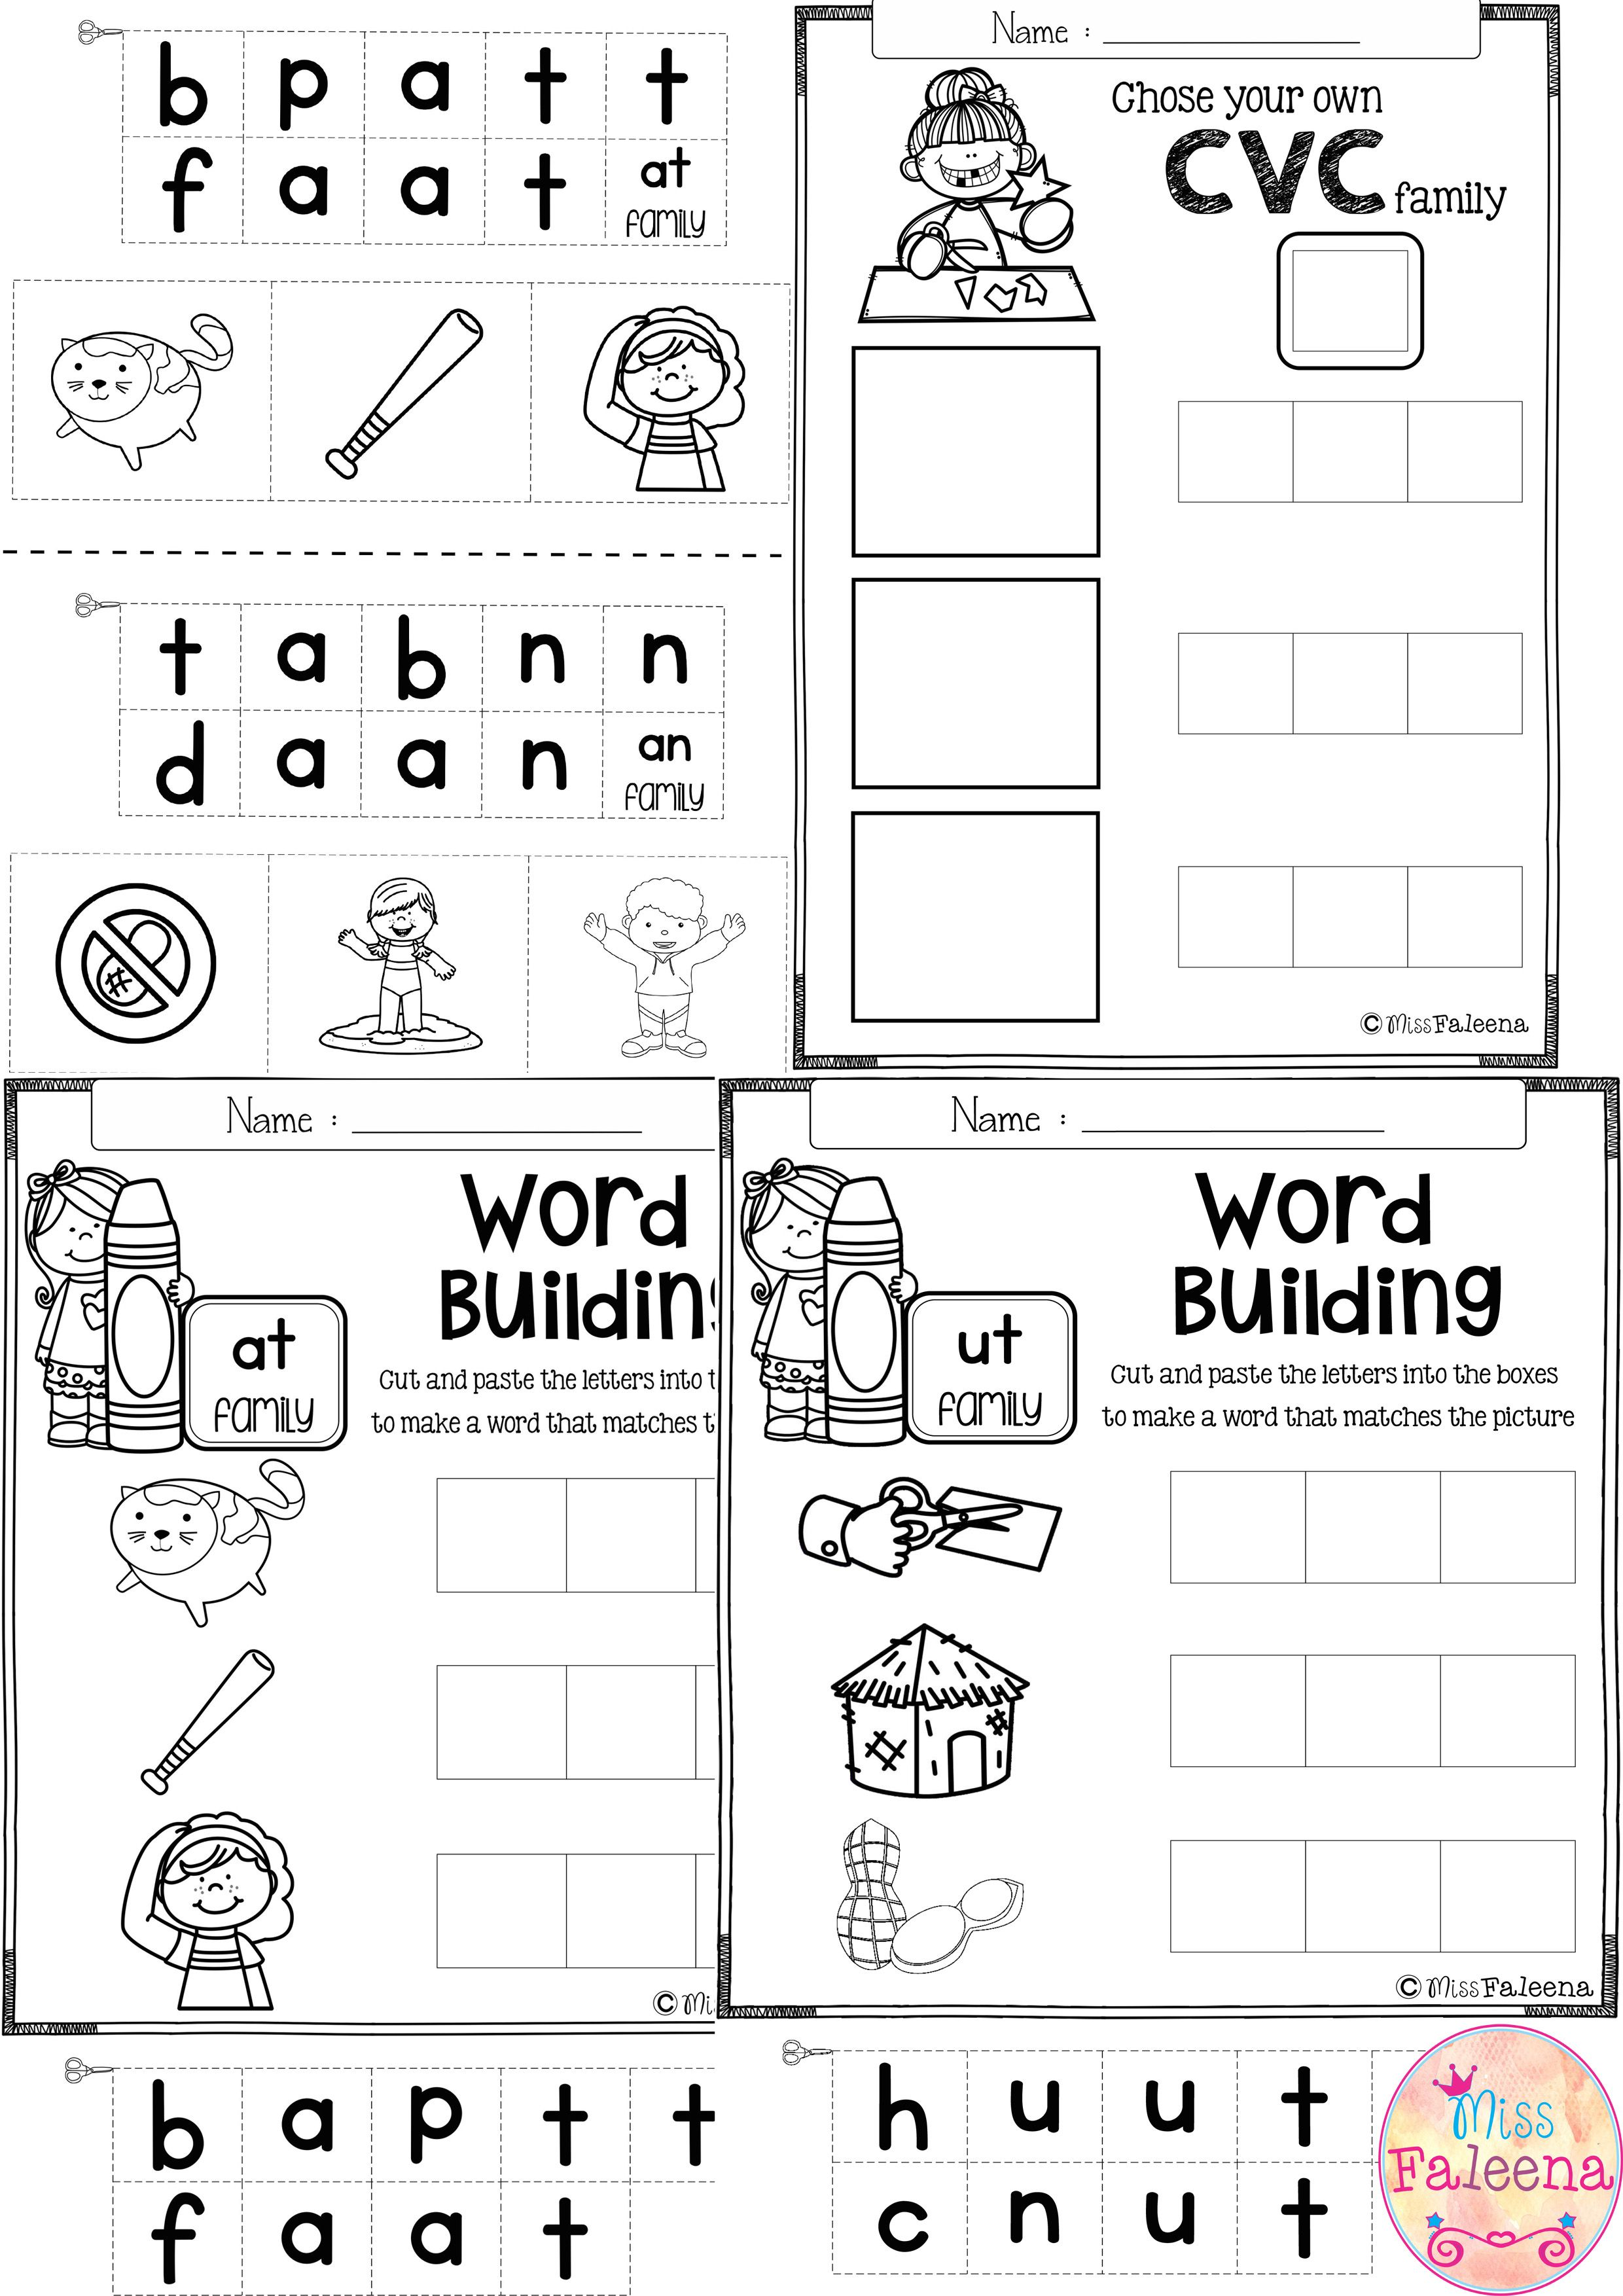 Free Cvc Word Building Practice This Product Will Help To Teach Your Students Building Simple Words I Cvc Words Kindergarten Worksheets Cvc Words Worksheets [ 3508 x 2480 Pixel ]